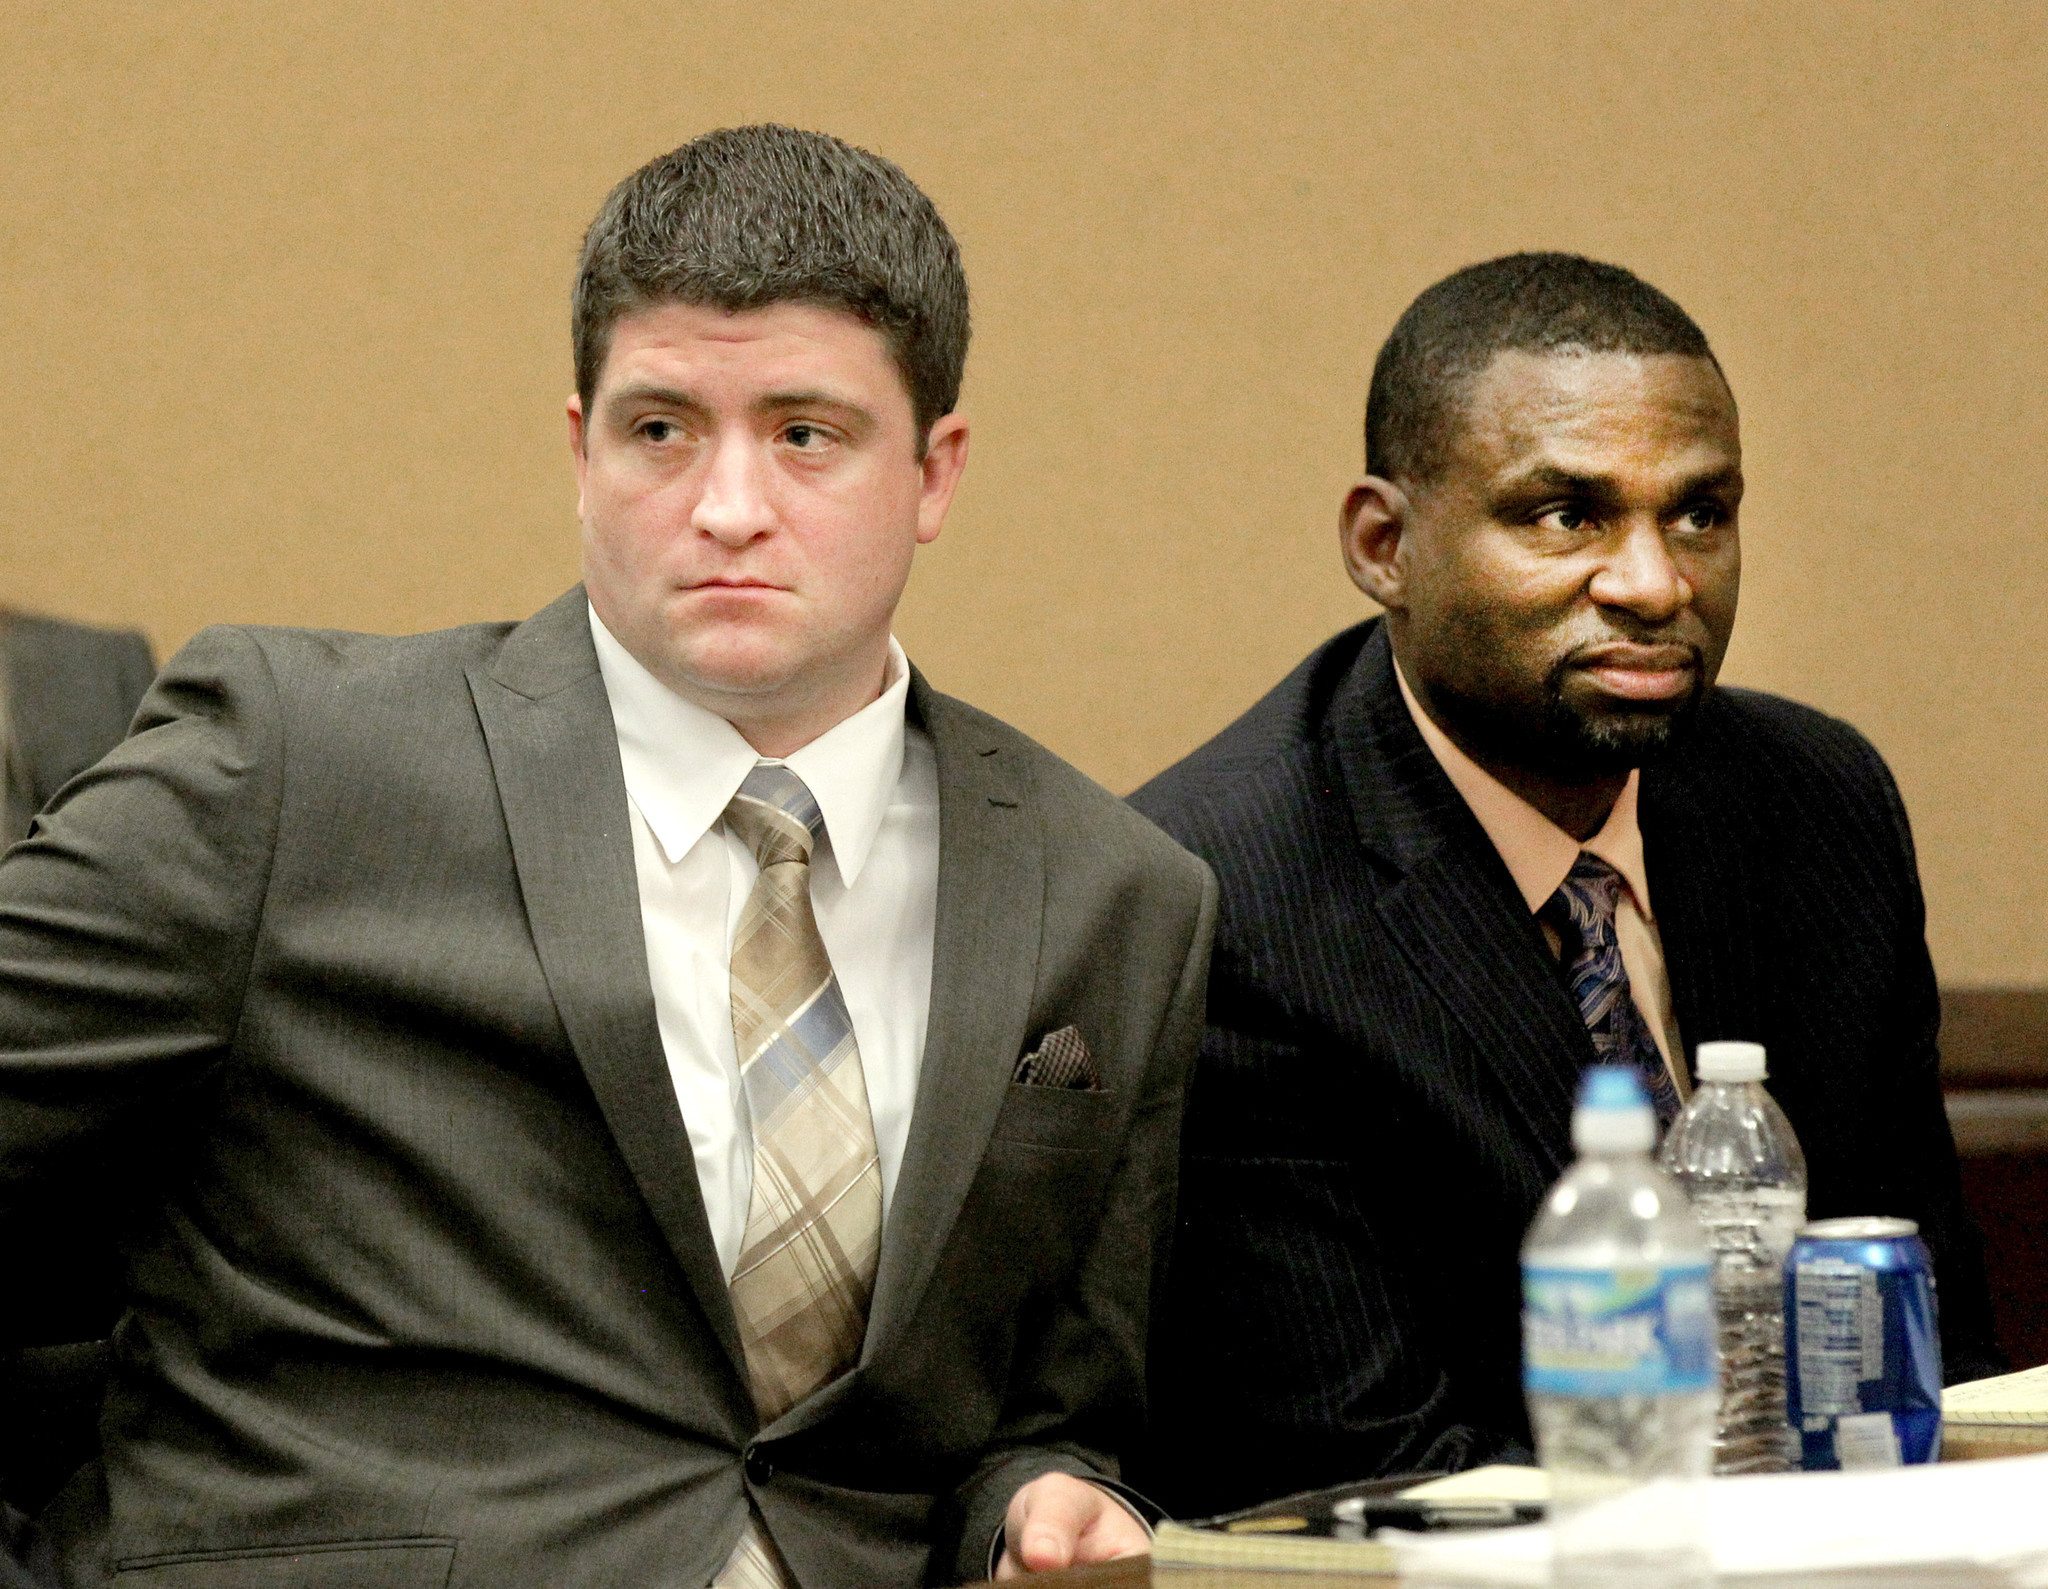 Six Cleveland police officers fired for fatal '137 shots' car chase in 2012